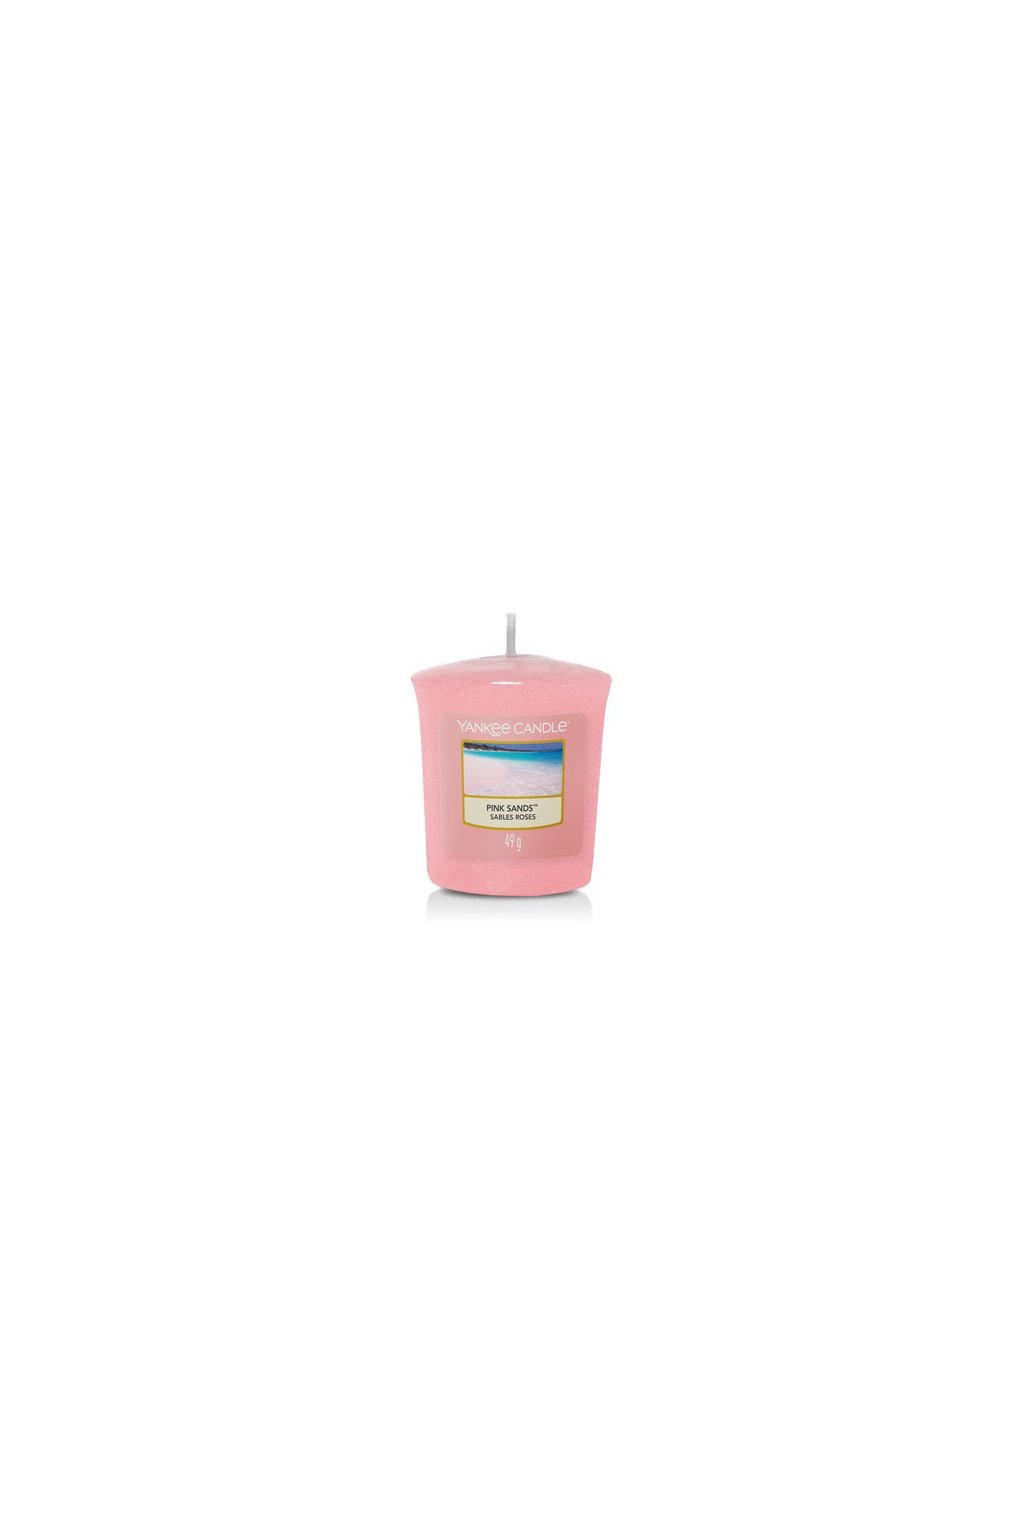 Yankee Candle Pink Sands 49g